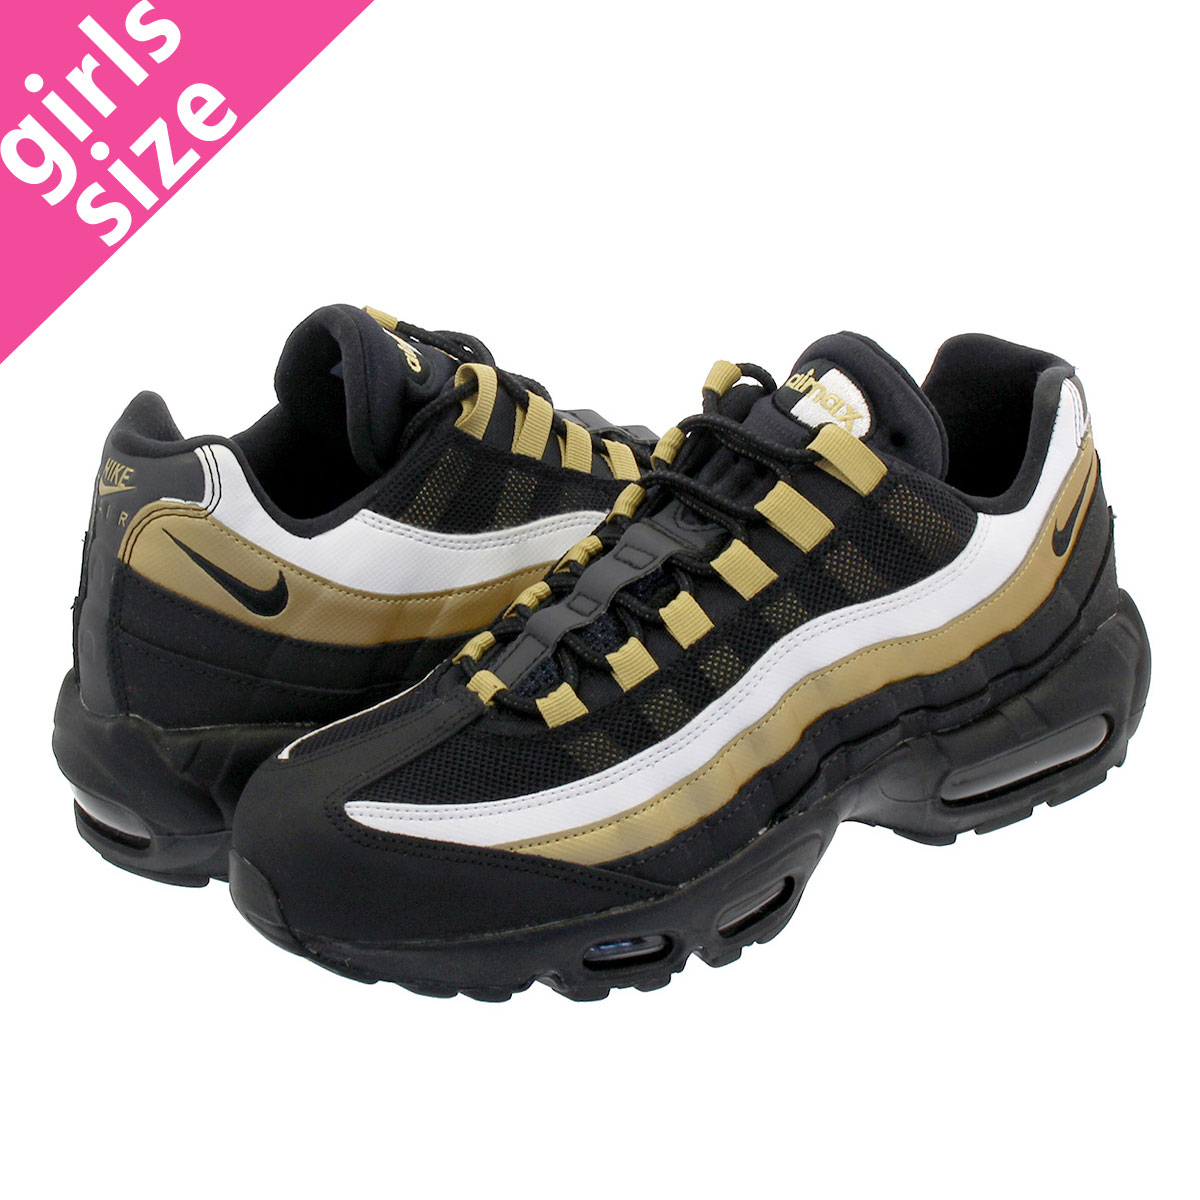 premium selection 82951 bed07 NIKE AIR MAX 95 OG Kie Ney AMAX 95 OG BLACKMETALLIC GOLD at2865-002